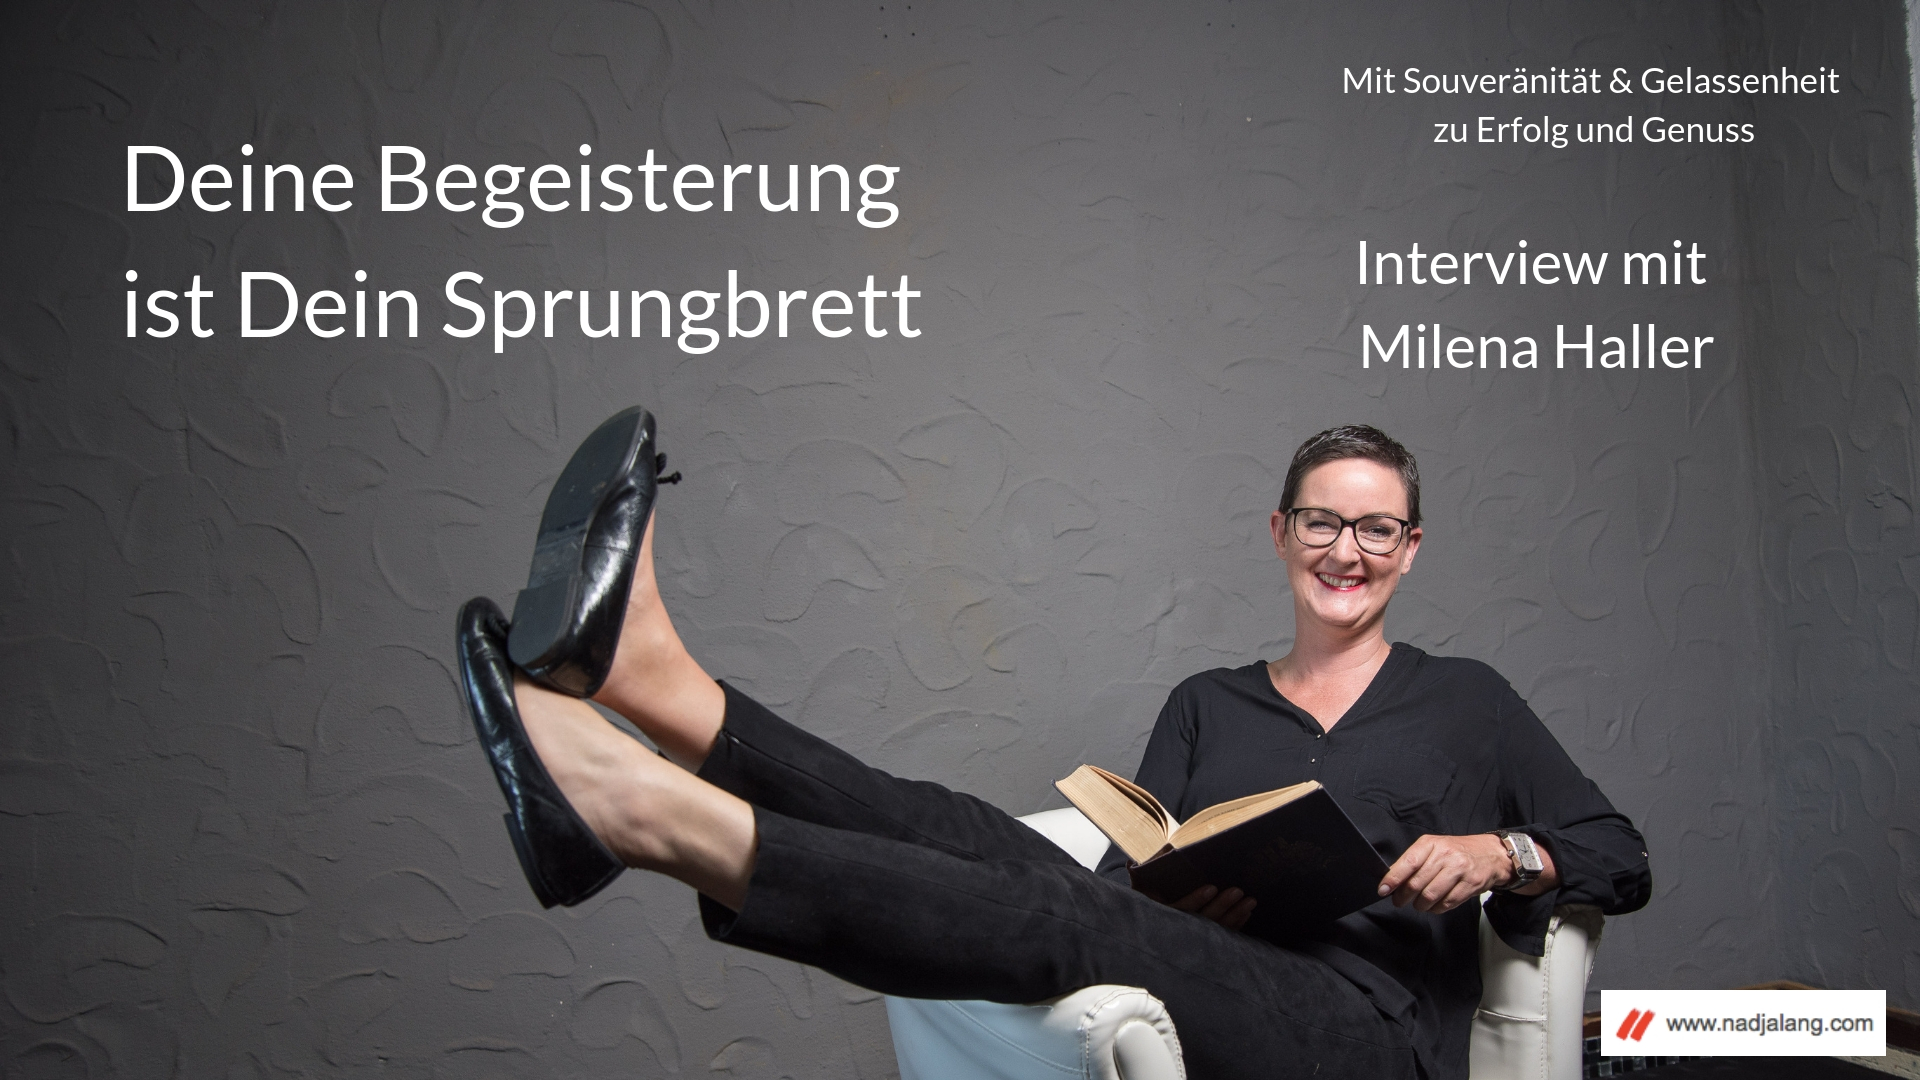 Interview mit Milena Haller.jpg